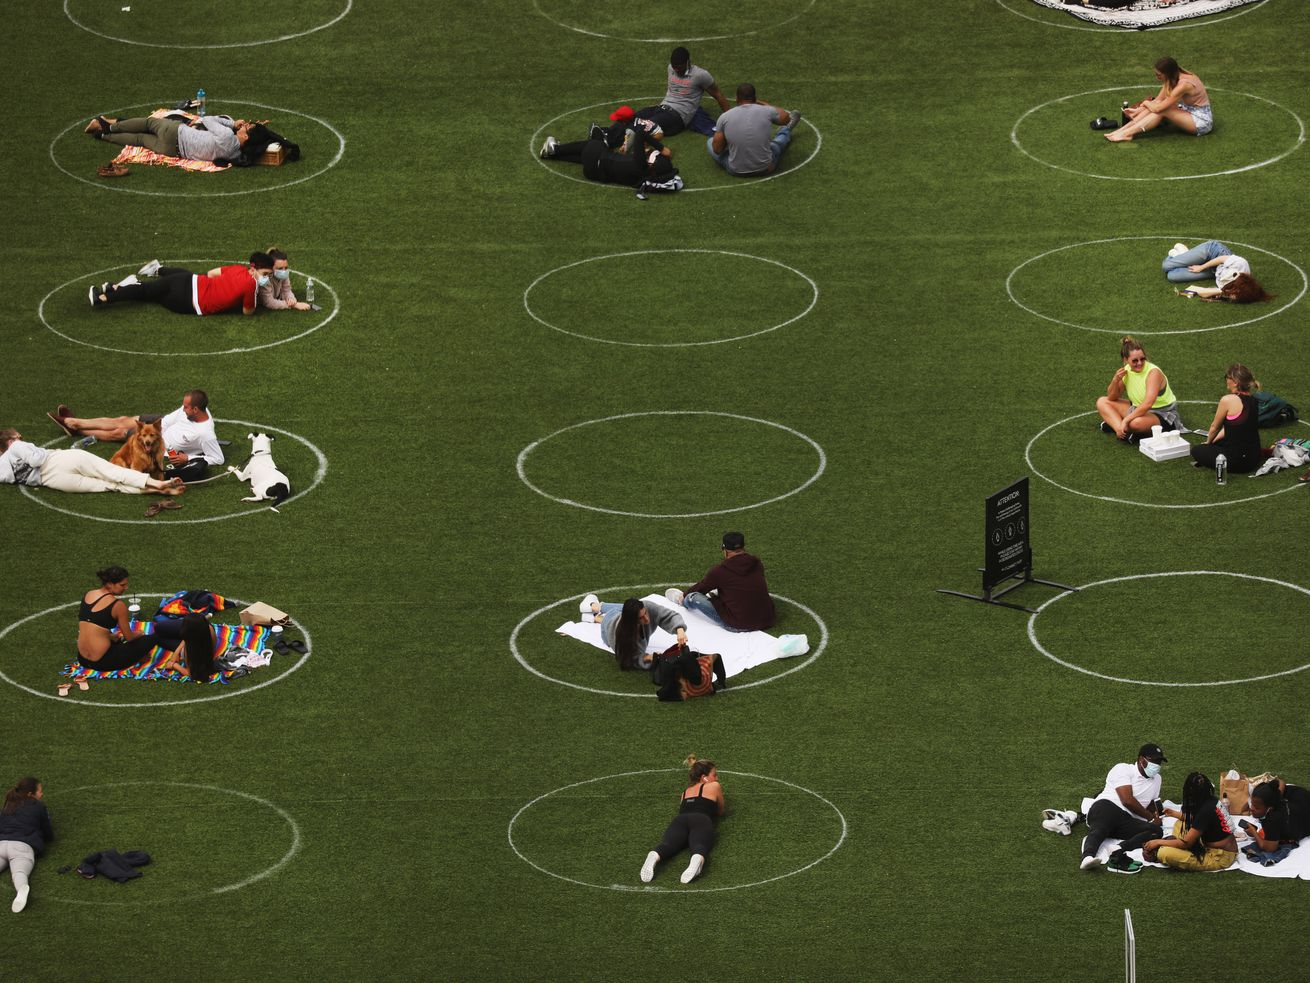 People sit in circles meant to encourage social distancing during the coronavirus pandemic in Domino Park along the East River on May 18, 2020 in the Williamsburg neighborhood of the Brooklyn borough in New York City.